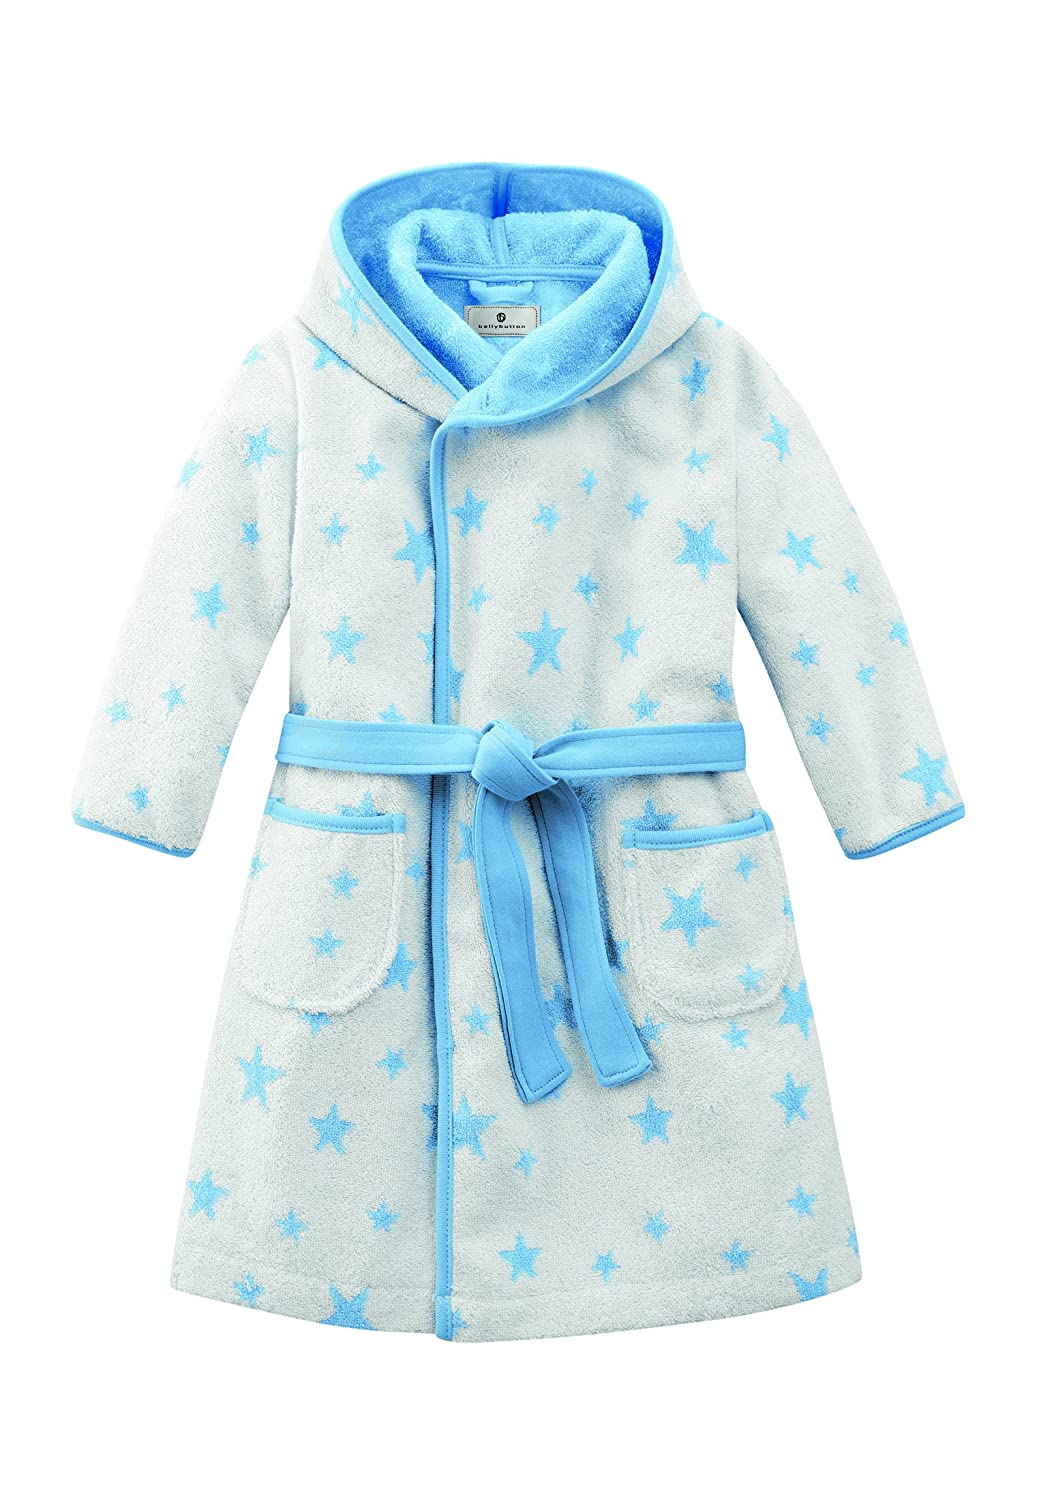 Bellybutton Kids with Belt and Stars Bathrobe